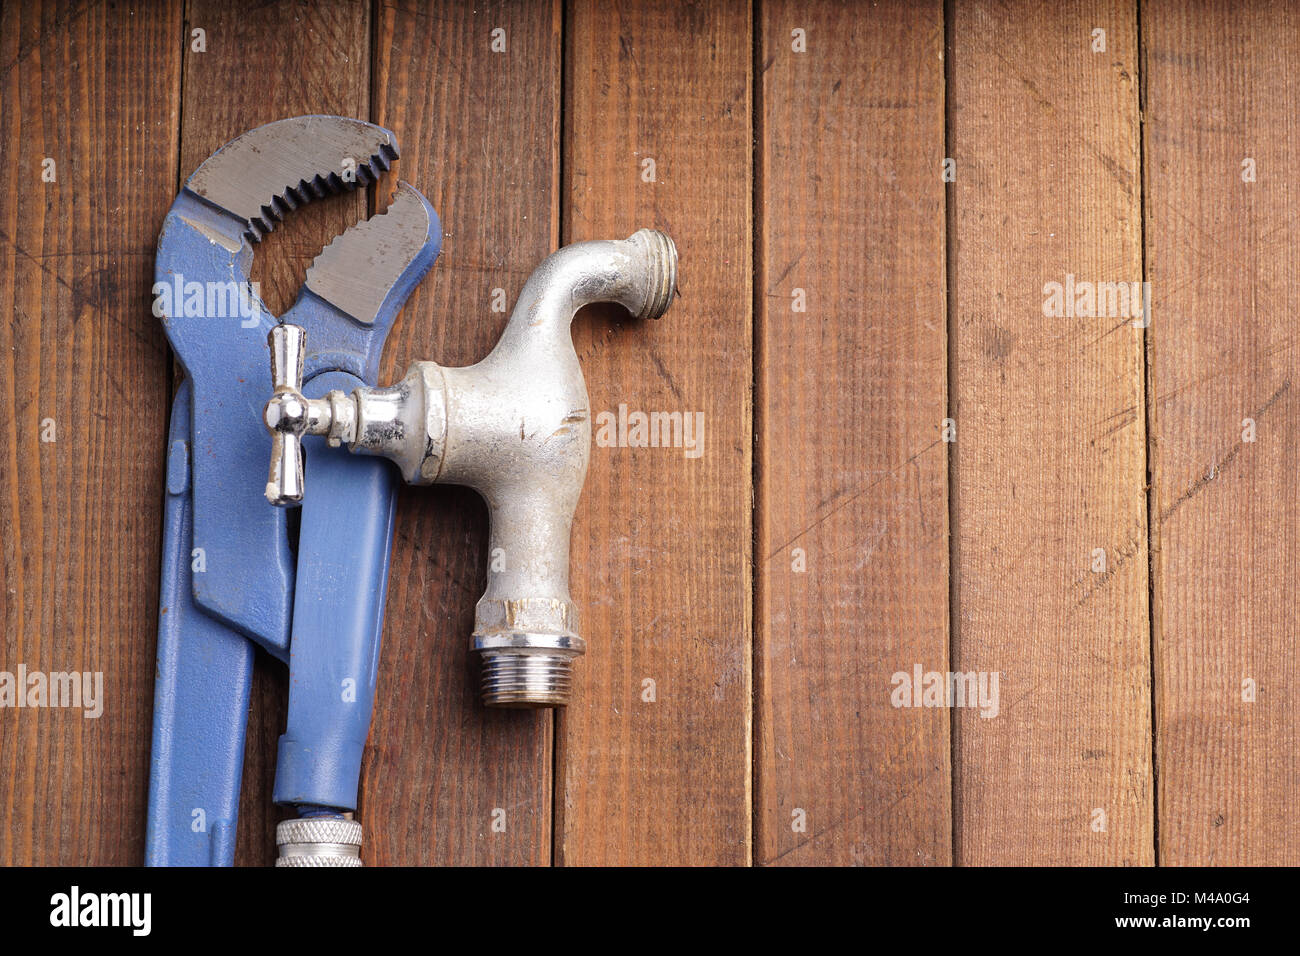 plumber tool faucet for house repair lying on wooden background ...